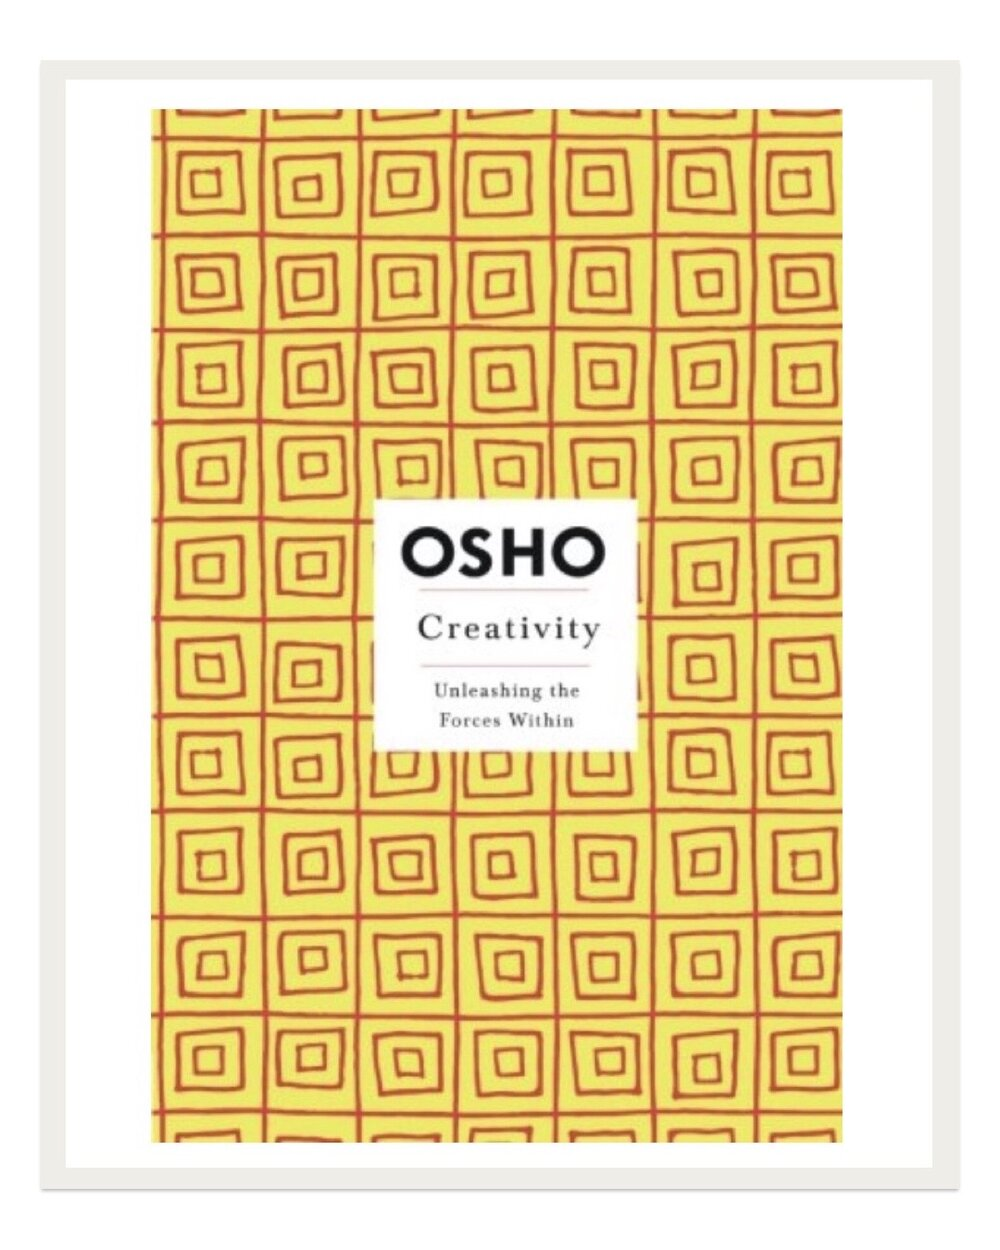 Probably my favorite book that discusses creativity, Osho uses simple metaphors to drive home complex concepts about finding and honing one's creative direction.